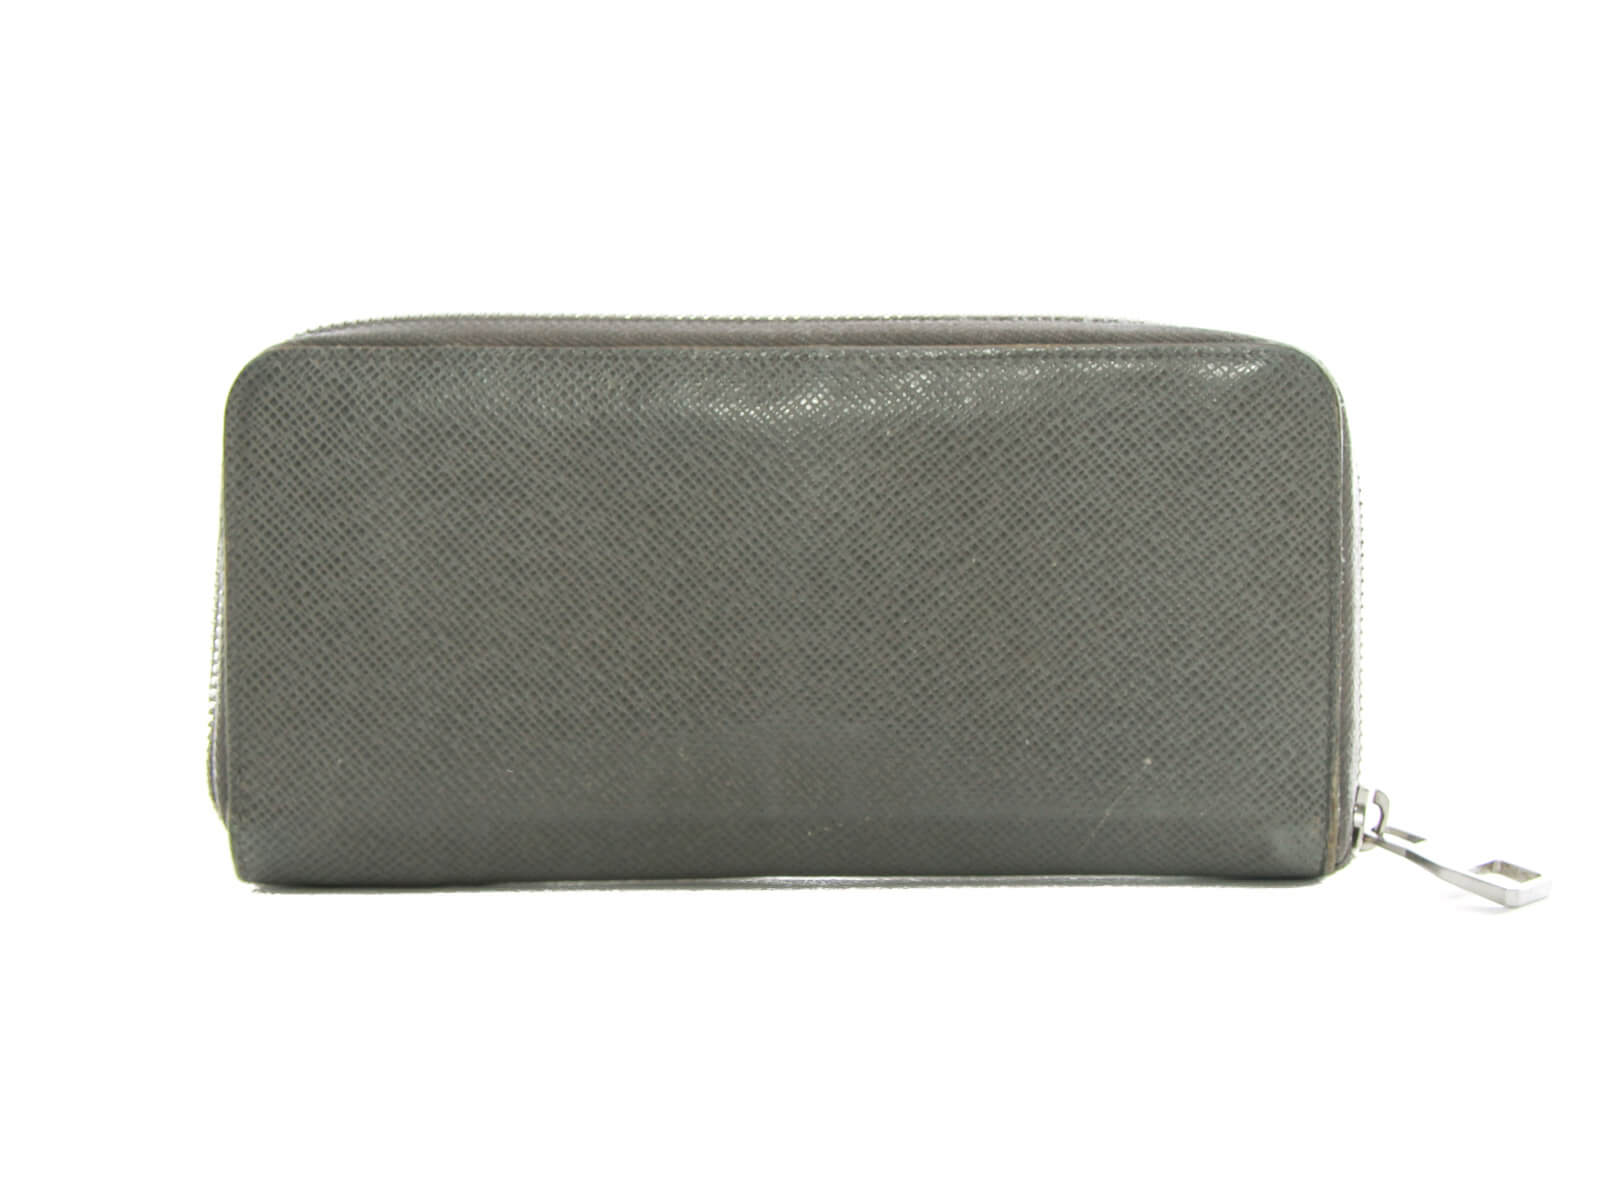 Authentic Louis Vuitton grey Taiga Zippy Organizer Wallet